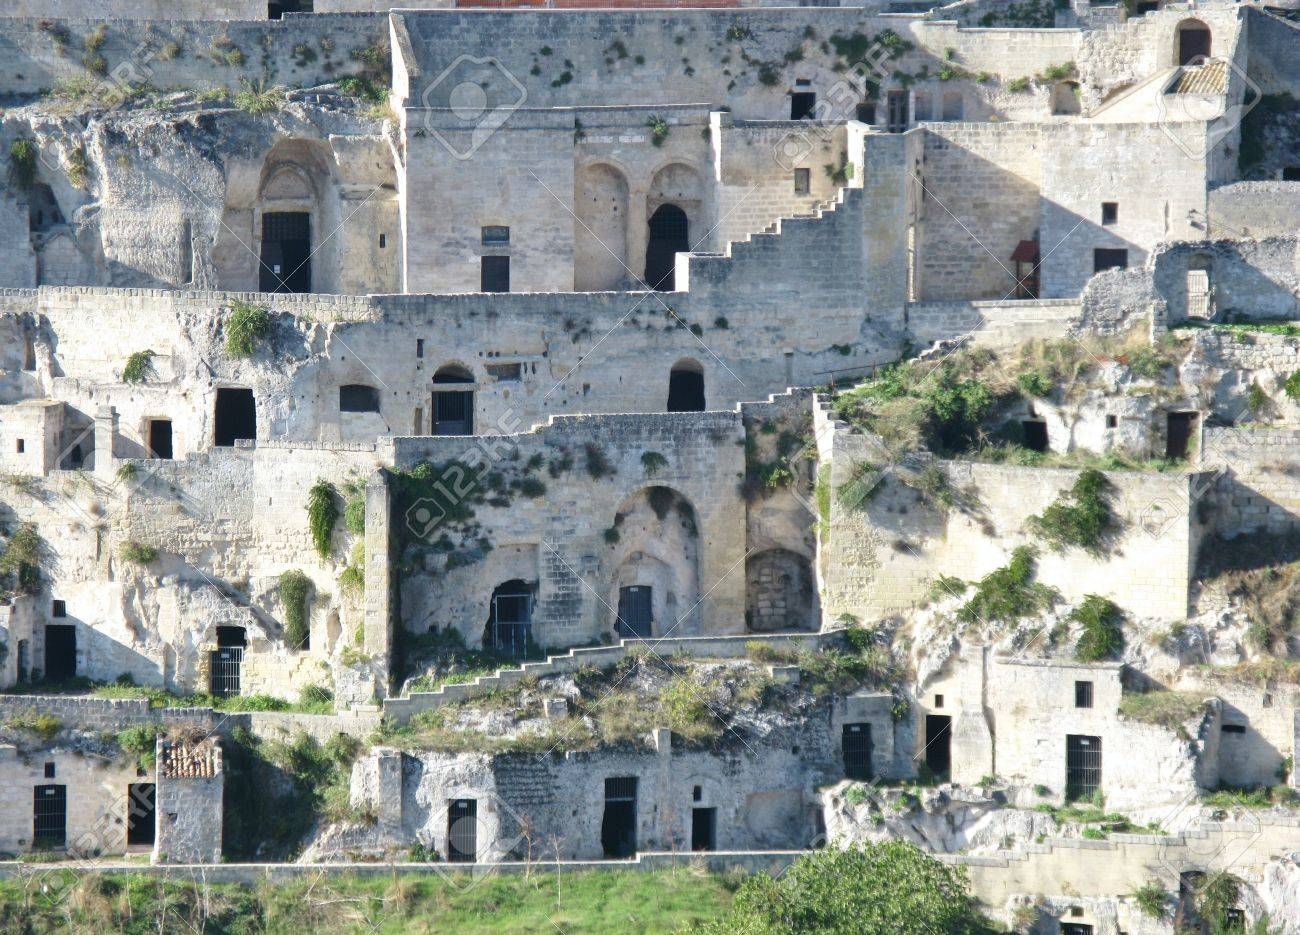 A view on the historic city Matera with the rupestrian churches ands houses in Basilicata in Italy Stock Photo - 16257974